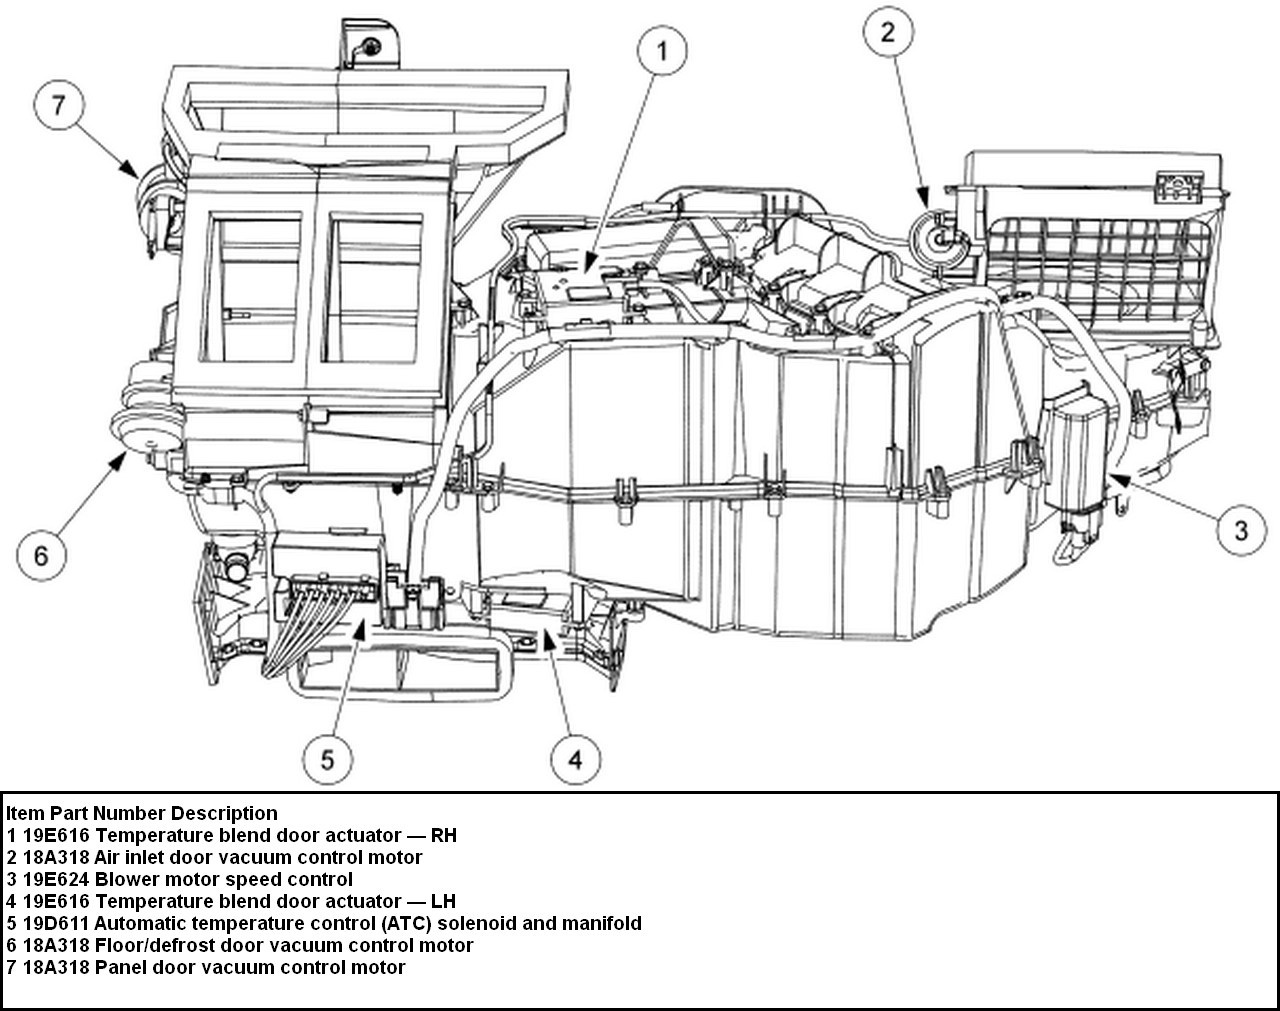 Diagram Fuse Box Diagram Lincoln Navigator 2006 Full Version Hd Quality Navigator 2006 Blogxshout Edizionisavine It